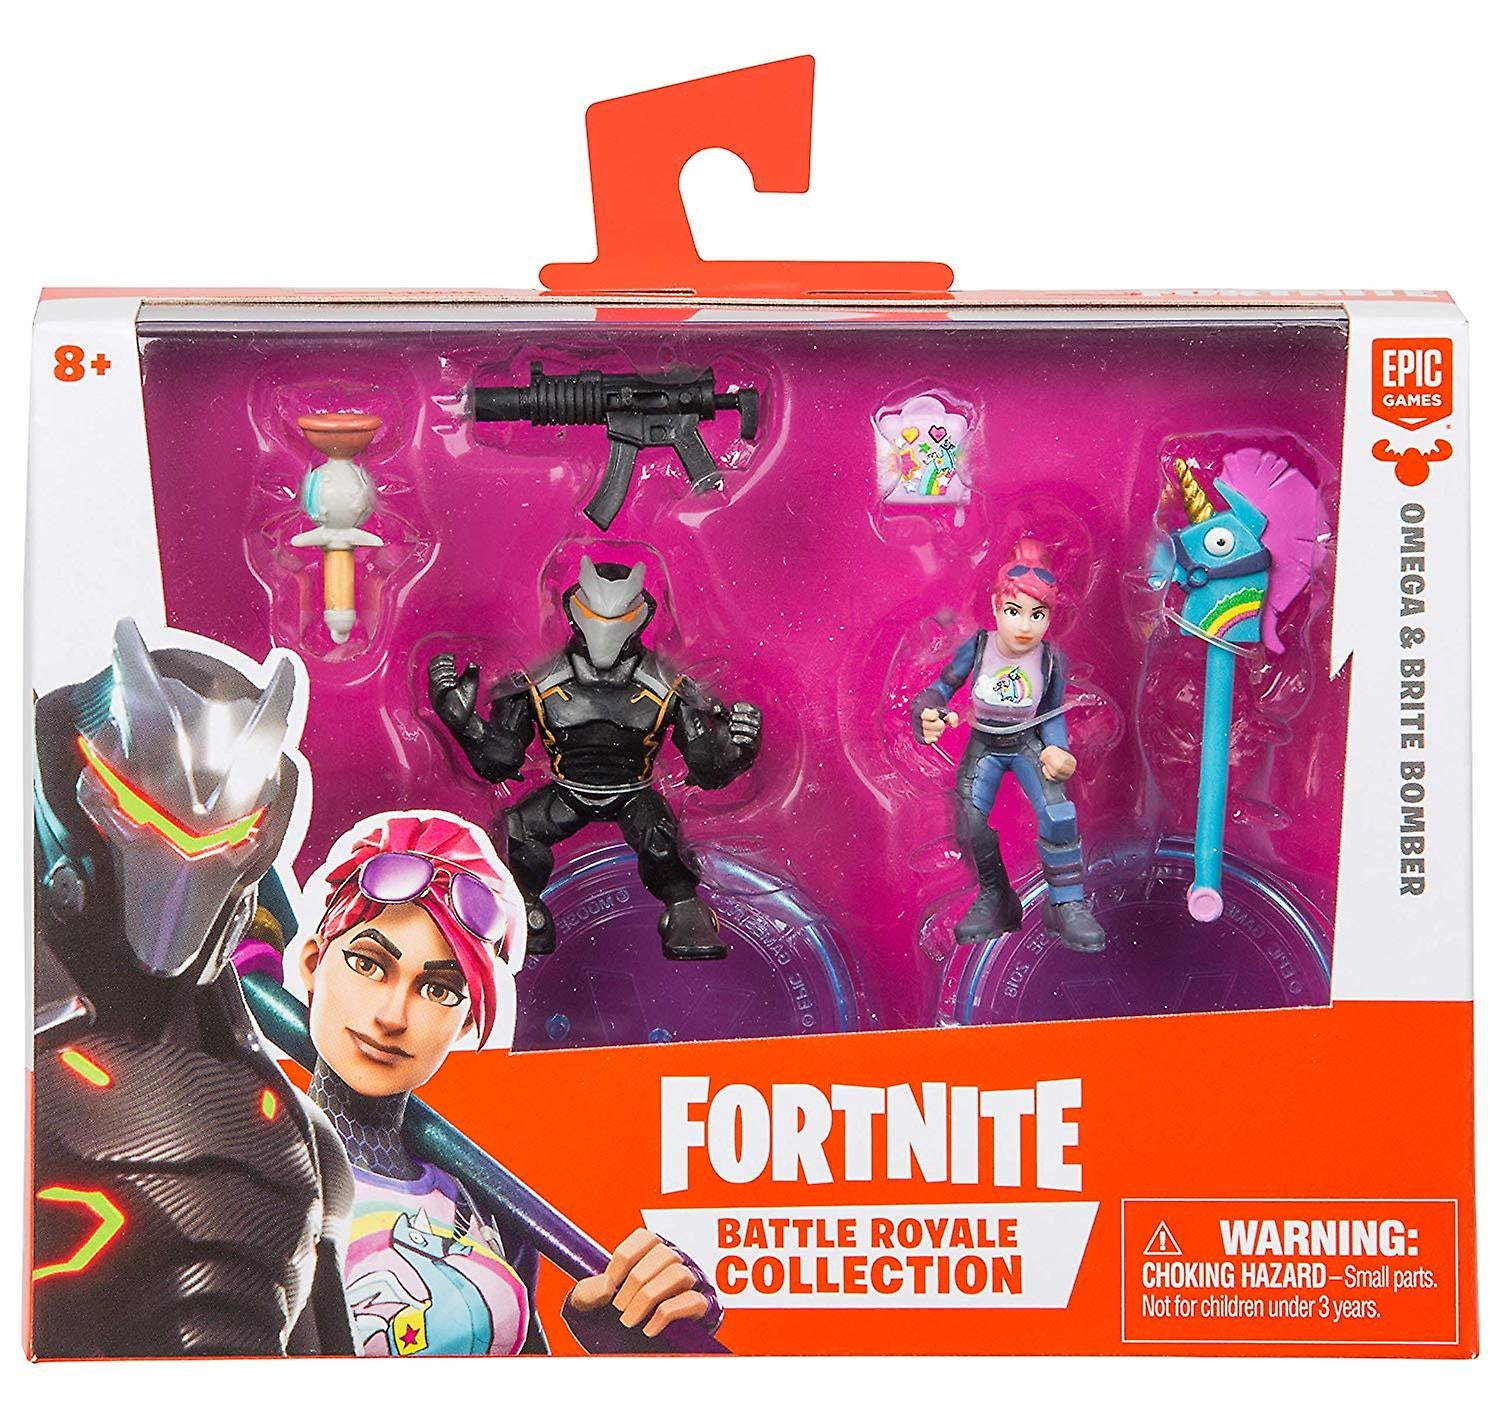 FORTNITE Battle Royale Collection Omega / Brite Bomber